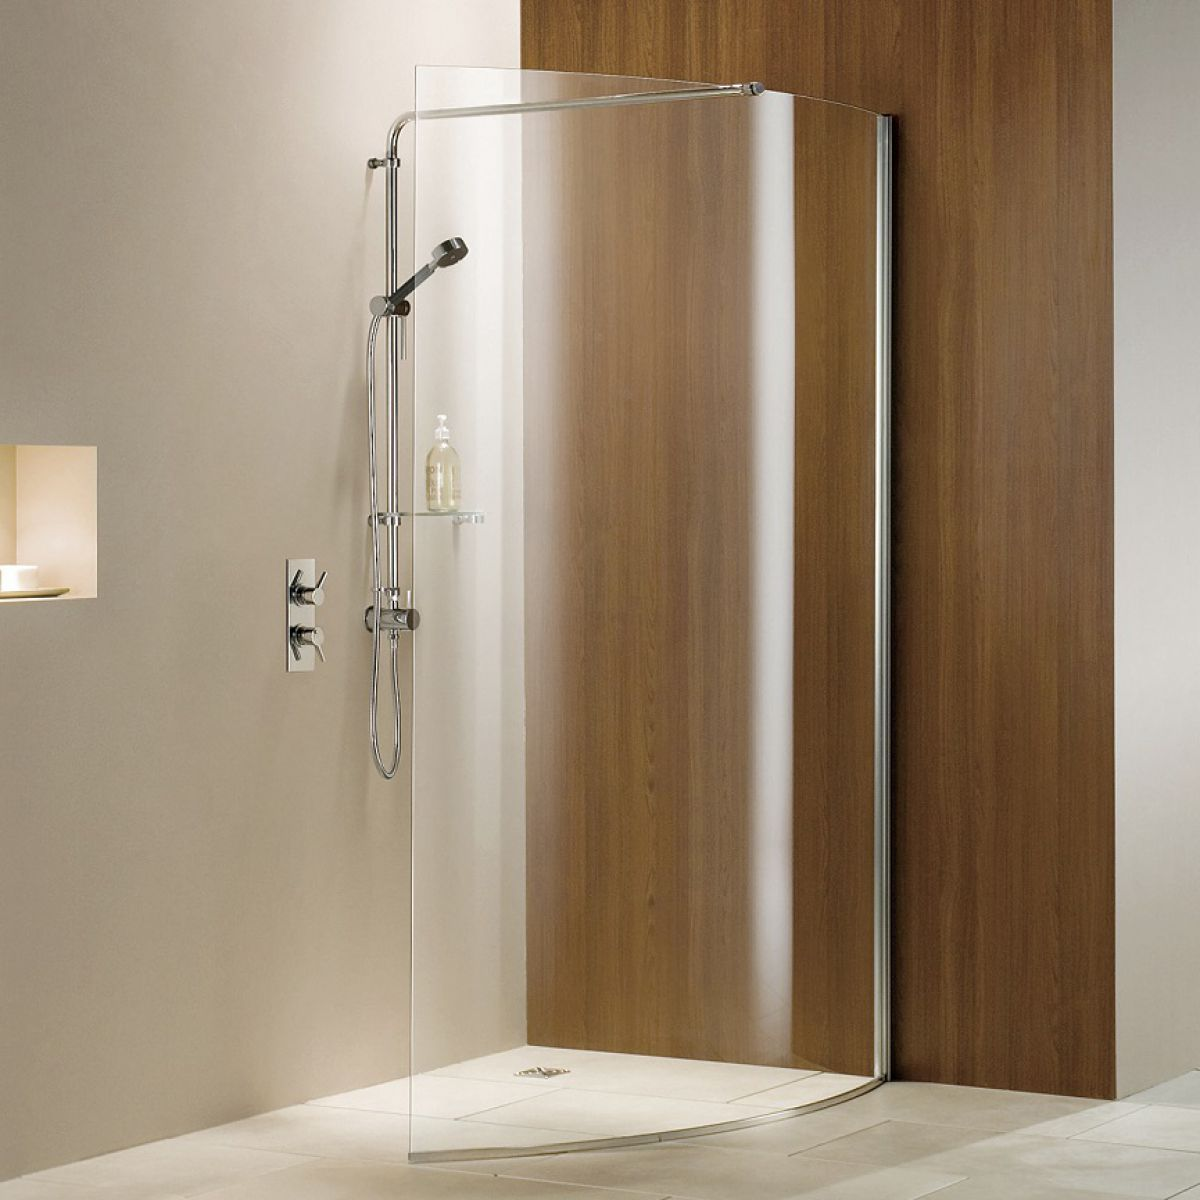 guides shower wet in walk help buyer example online and ideas room gallery showers wetrooms wetroom